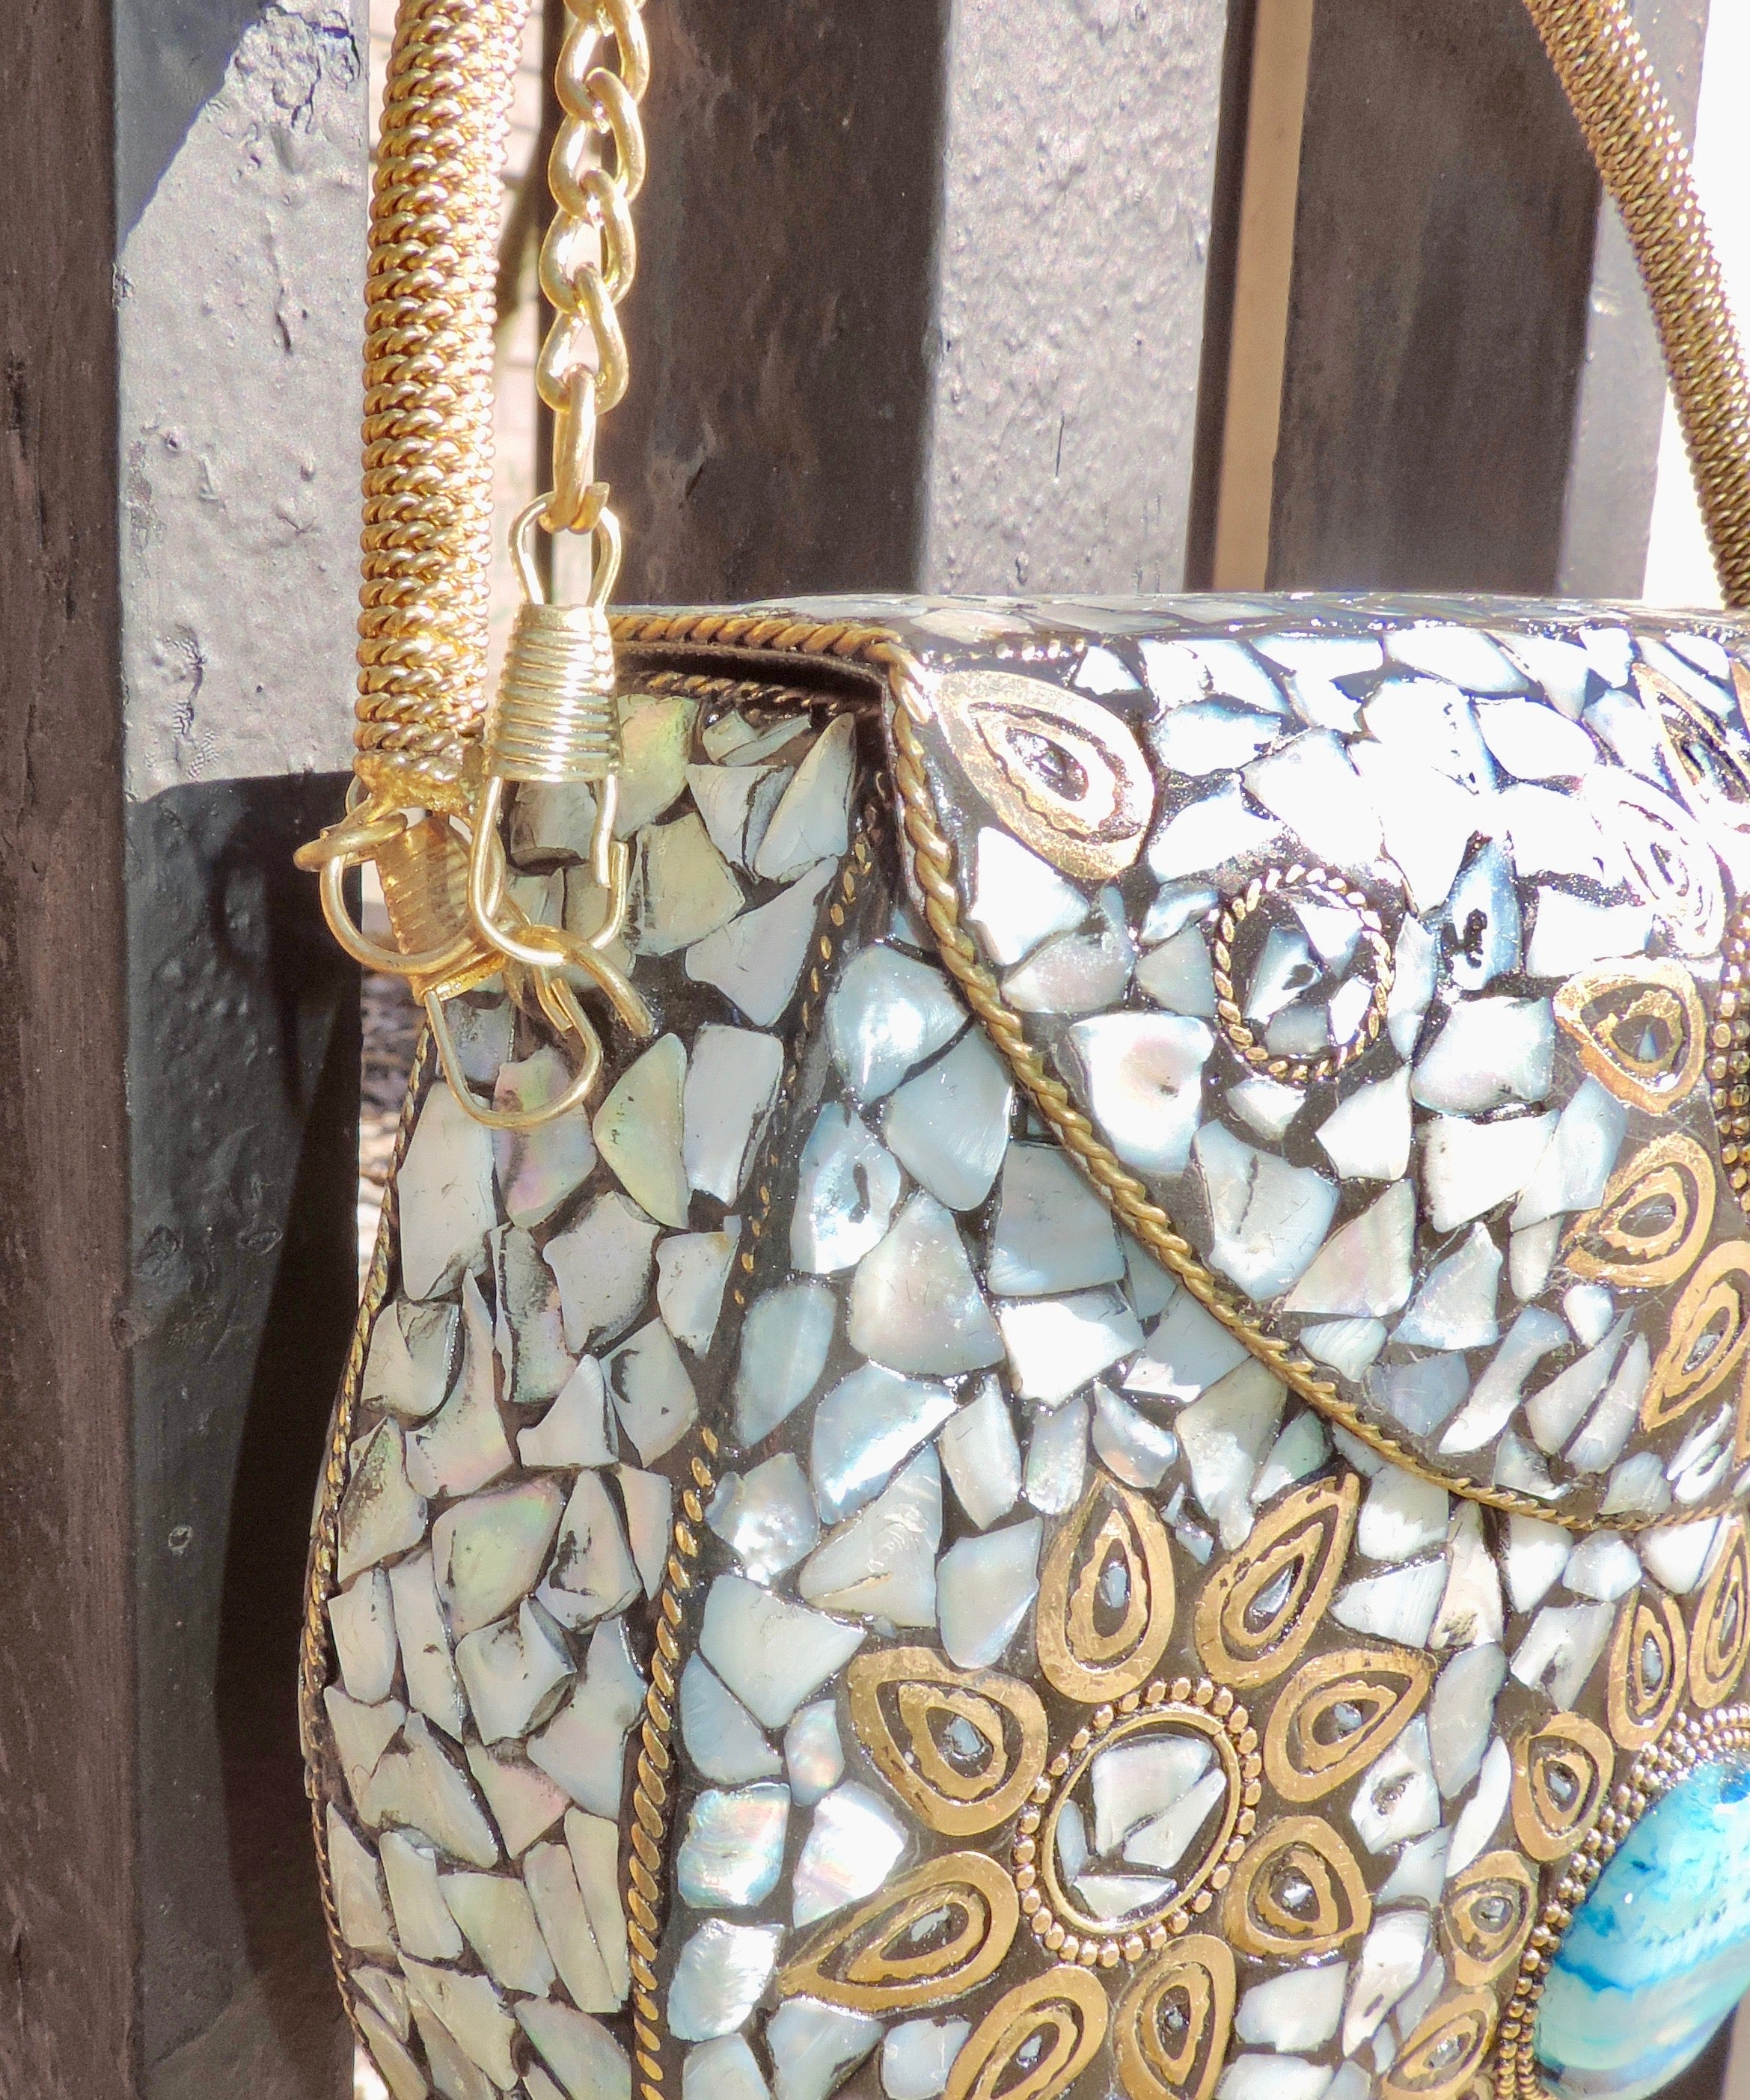 OCEAN MOTHER OF PEARL - BoBo Designed Mosaic Bag